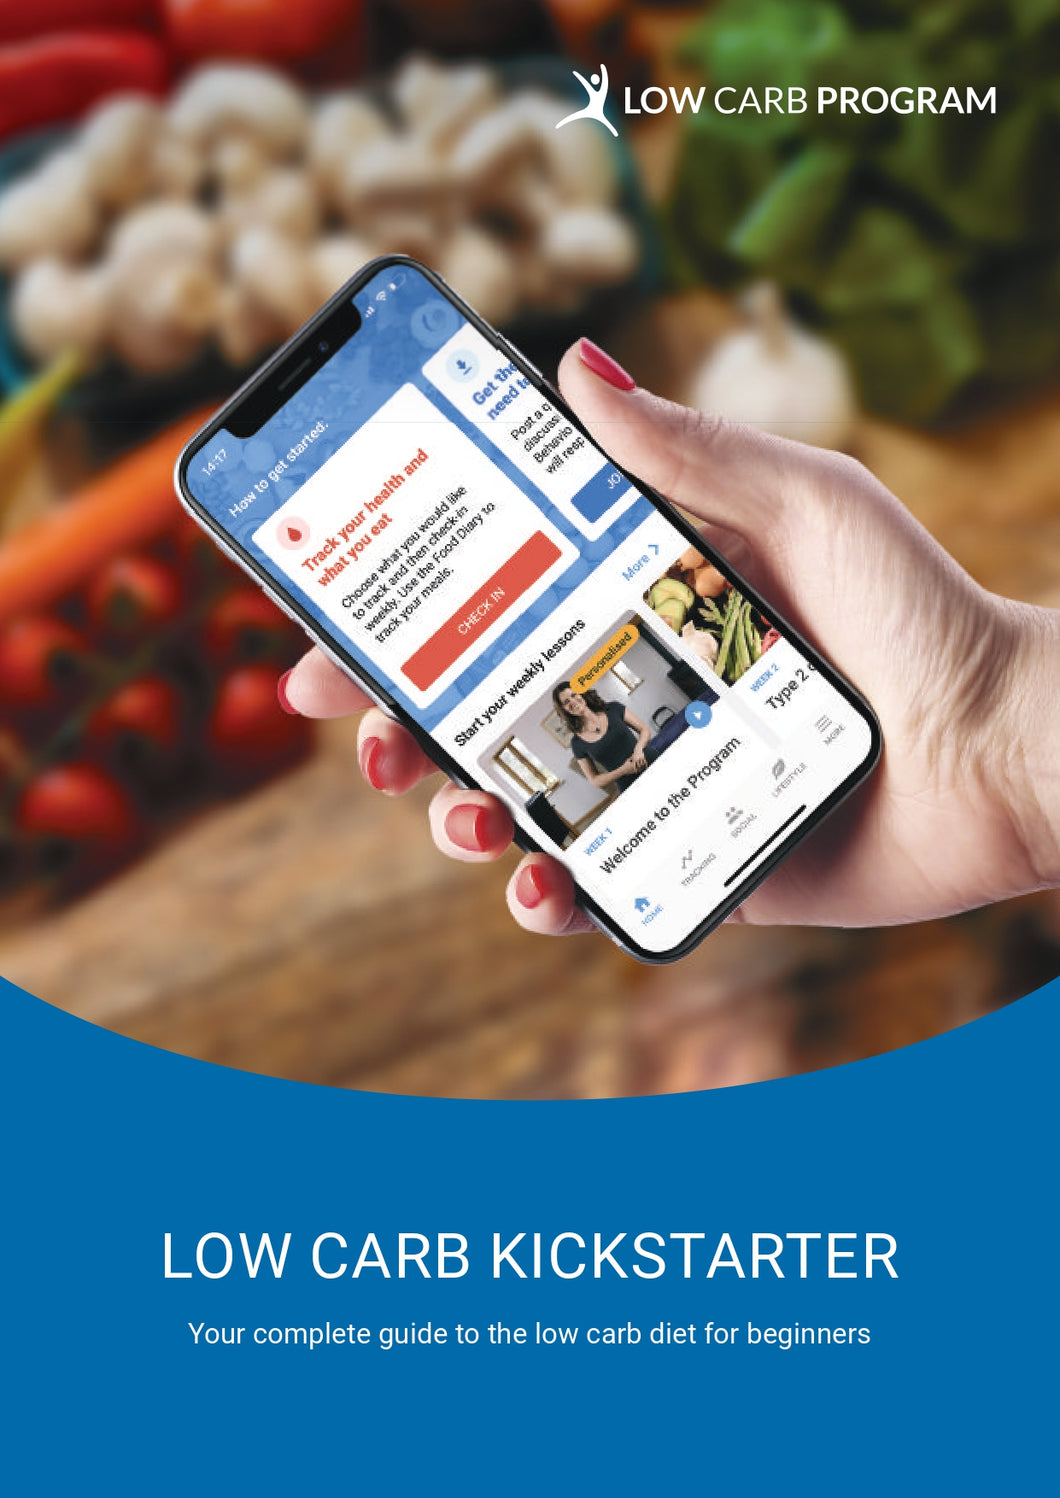 Low Carb Kickstarter - Complete Guide to the Low Carb Diet for Beginners PDF ebook